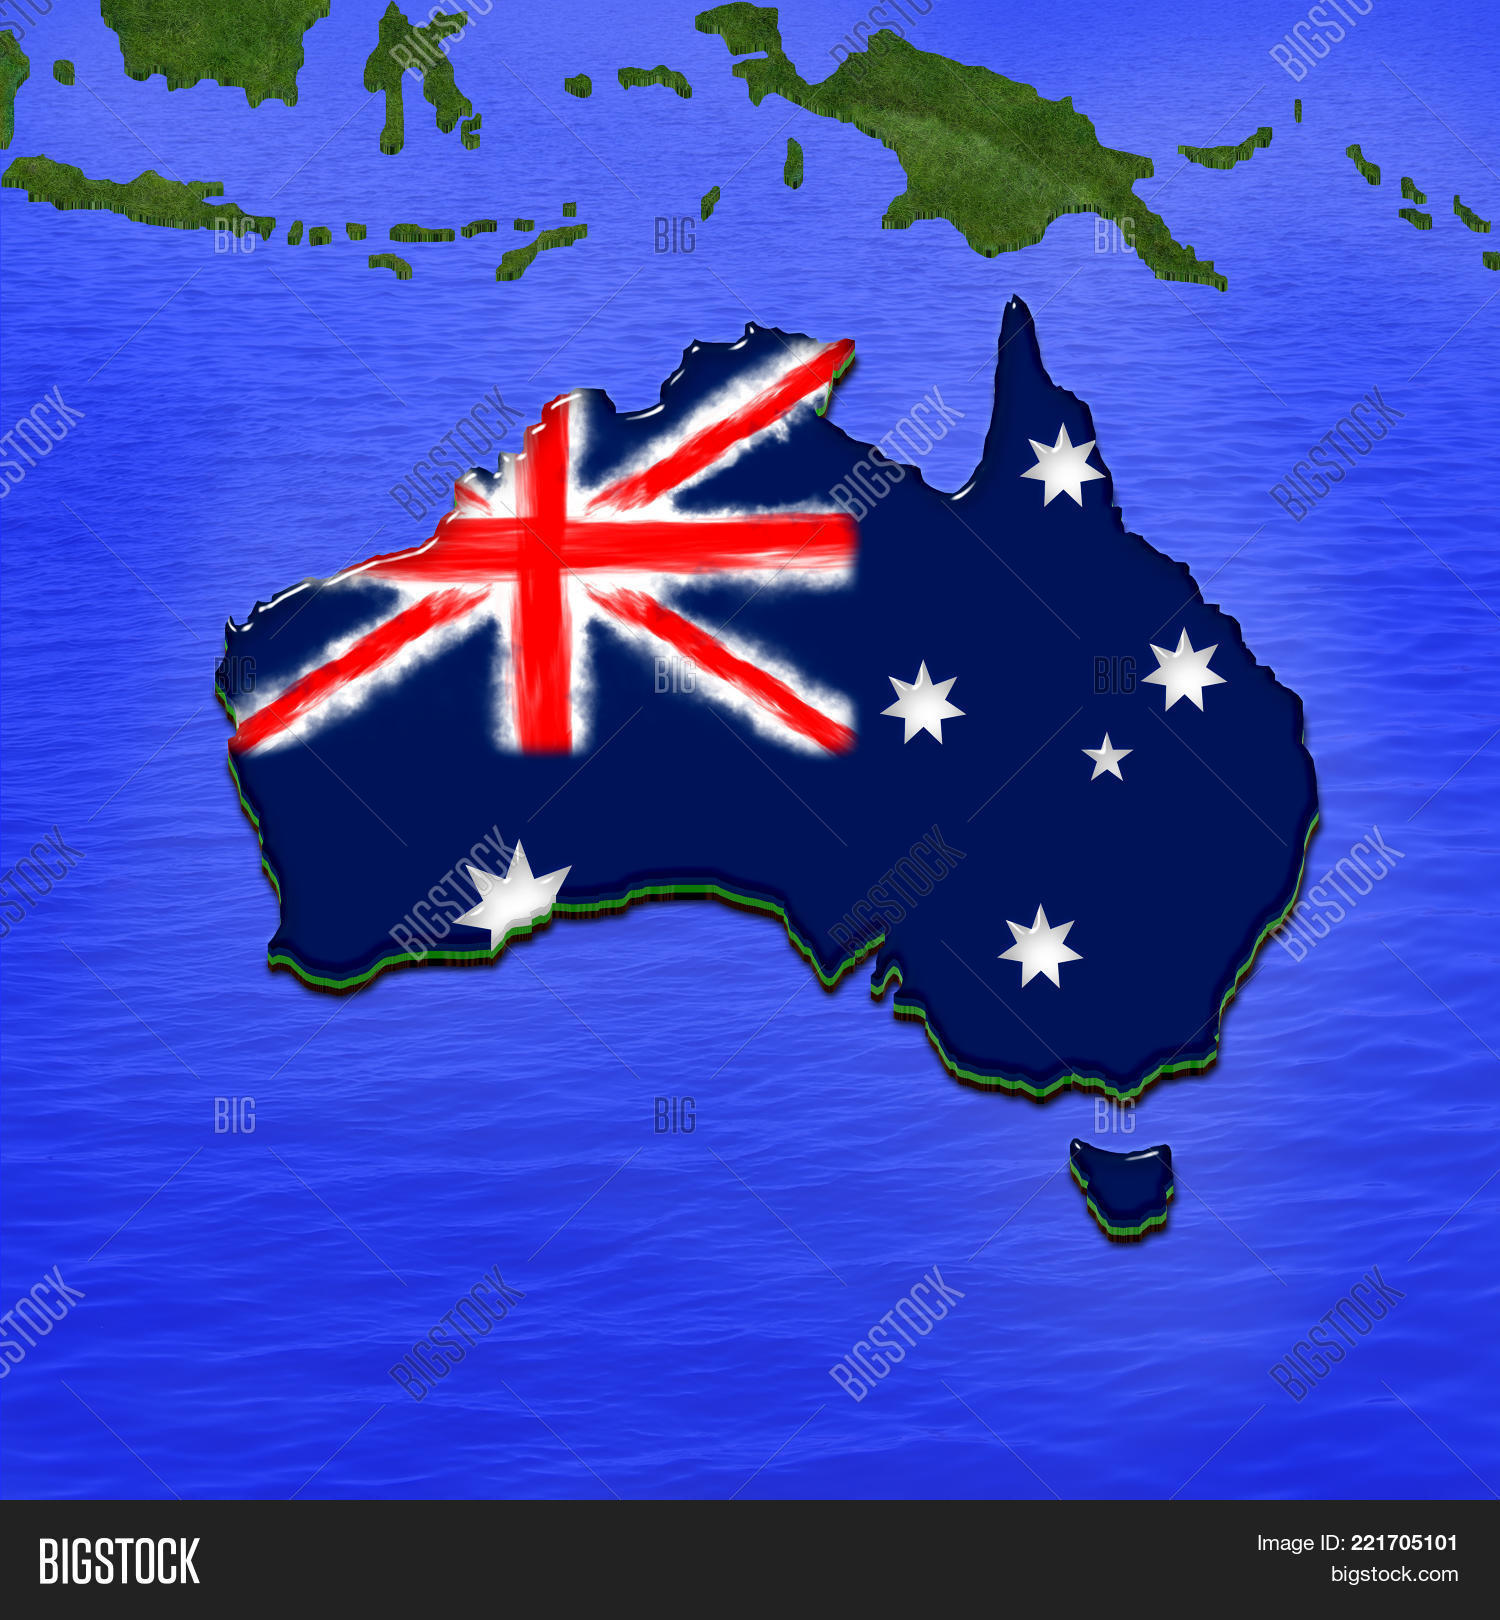 Free 3d Map Of Australia.3d Map Australia Image Photo Free Trial Bigstock